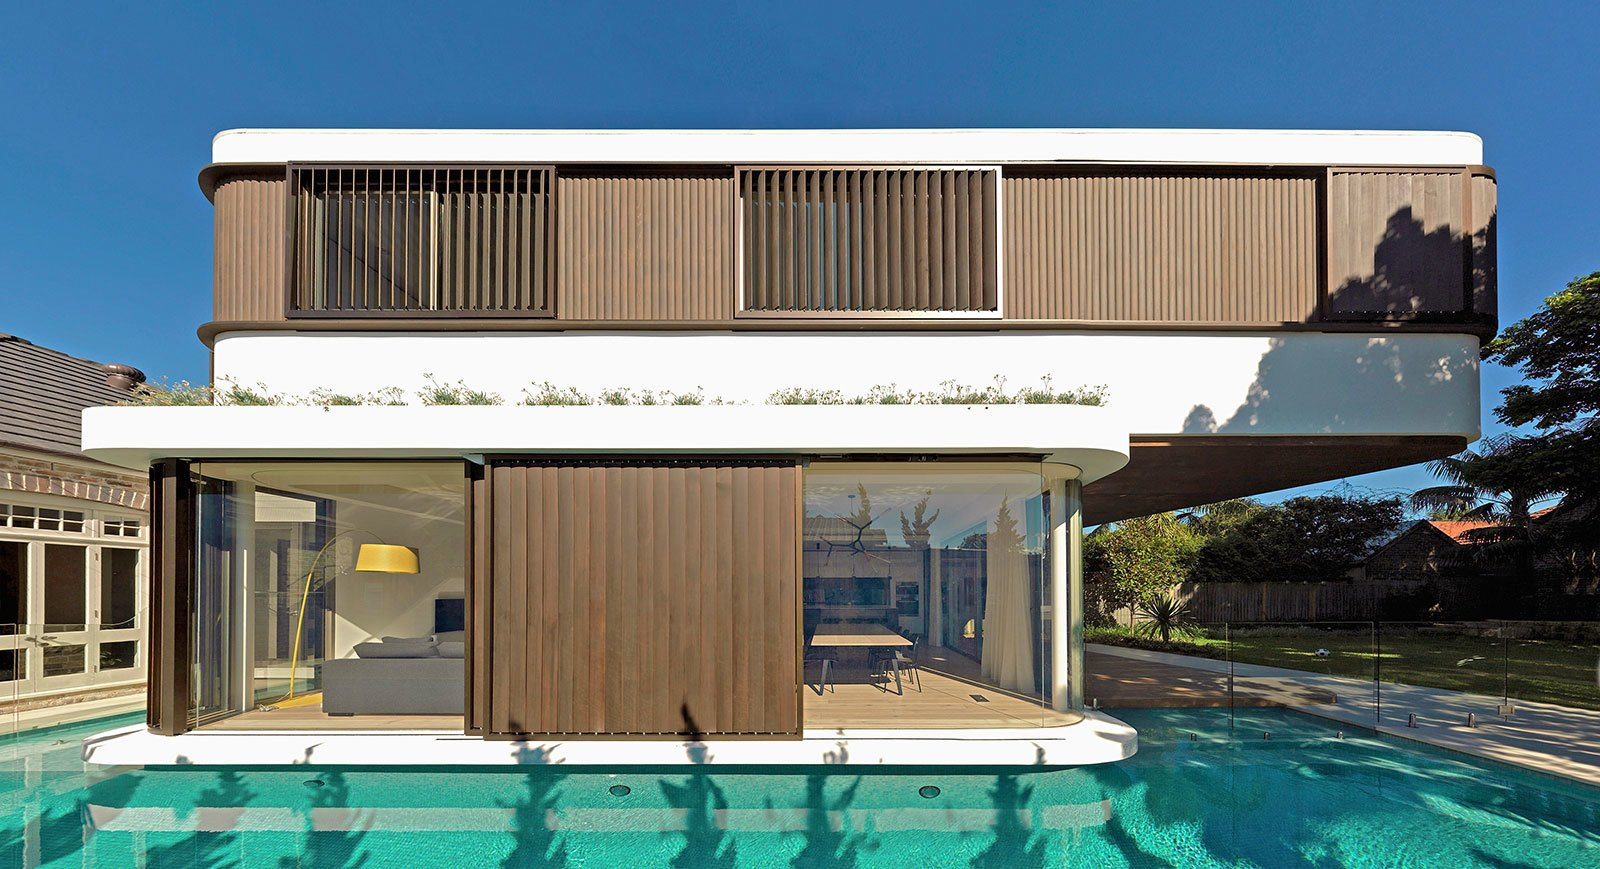 The first floor bedrooms cantilever towards the backyard, being larger than the ground floor living spaces. The two rectangular volumes are shifted, each with different wall constructions: very glazed and open downstairs, and closed upstairs. The bedrooms have two sliding shutters, manually controlled. © Justin Alexander  The Pool House by Luigi Rosselli Architects